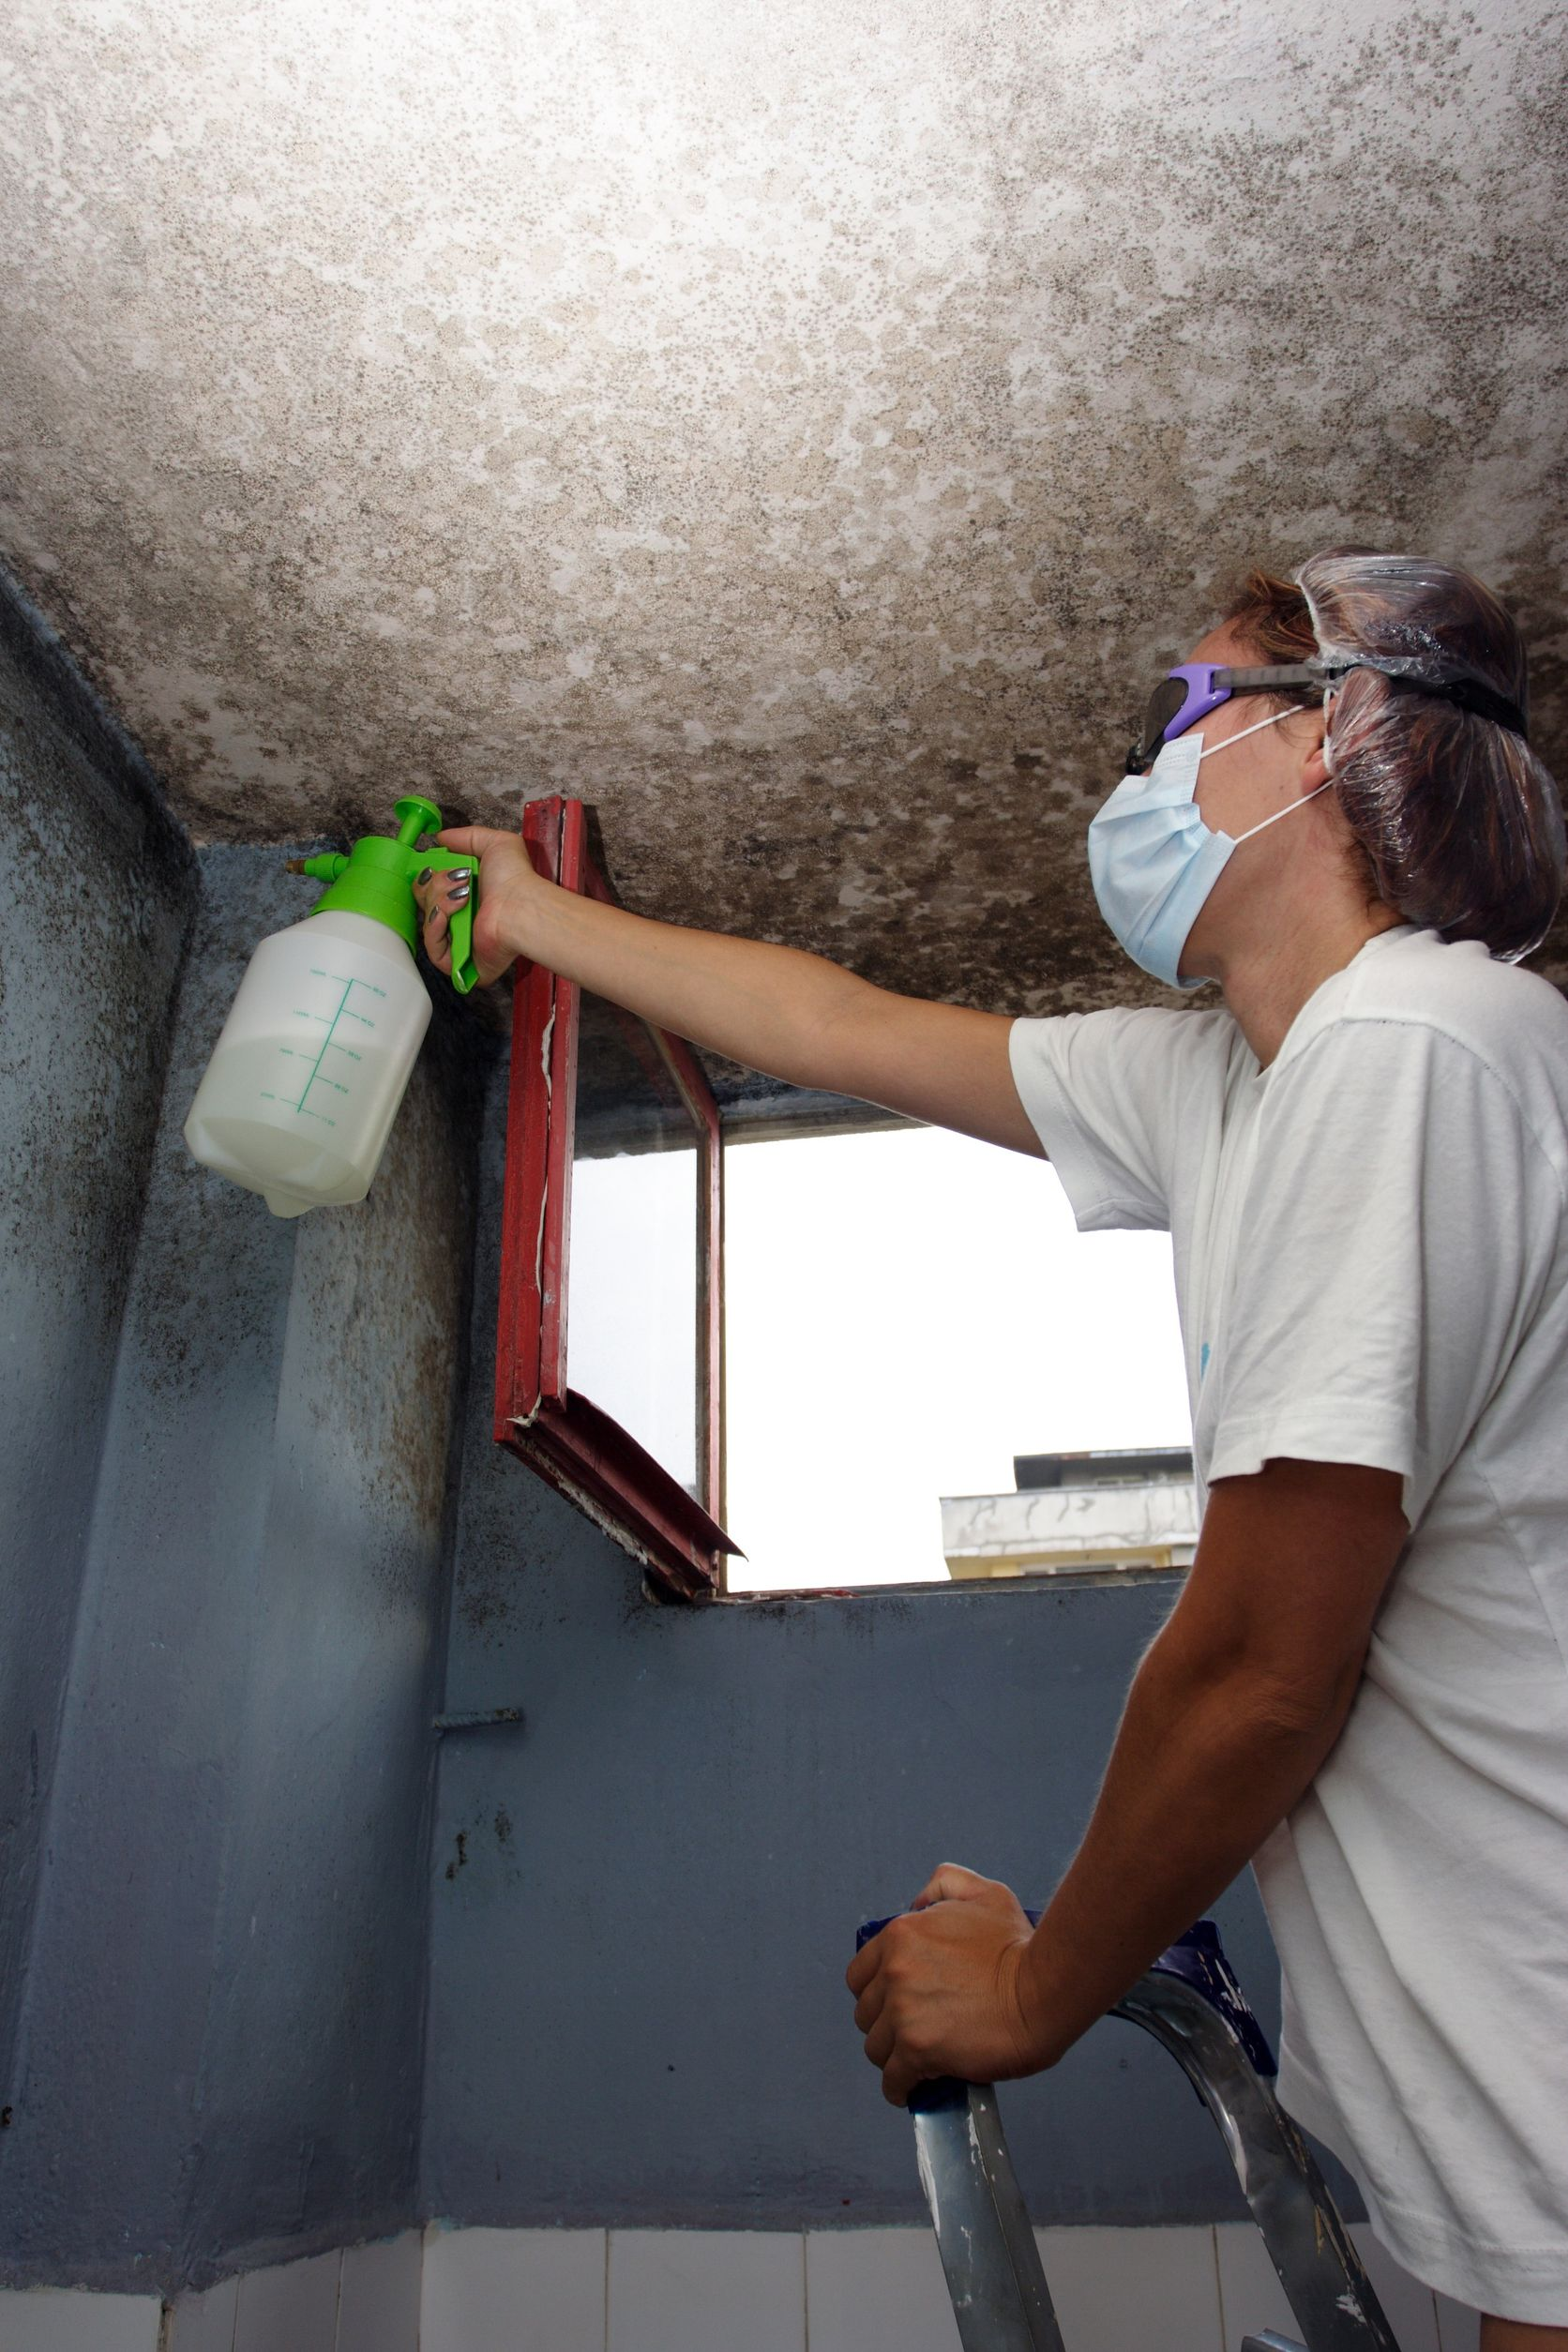 Five Ways To Prevent Mold Growth In Your Home